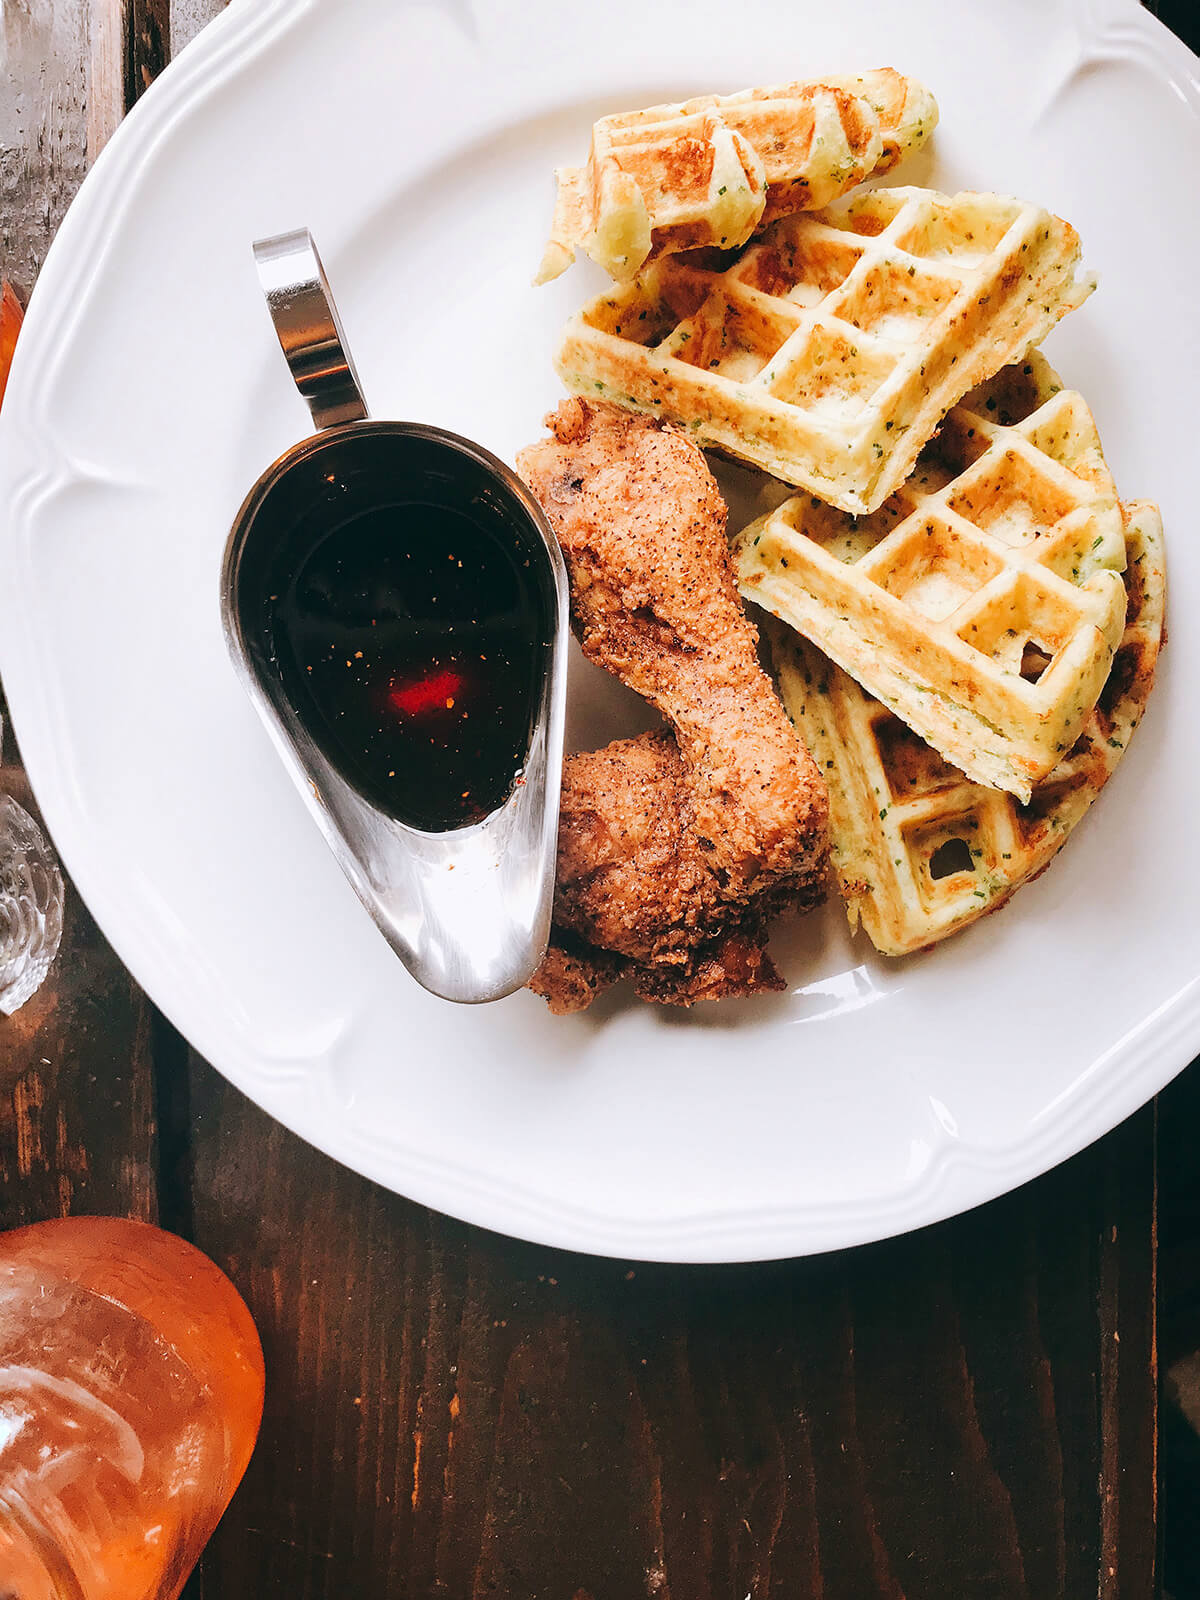 chicken-waffles-brunch-dinette-triple-crown-montreal © Will Travel for Food